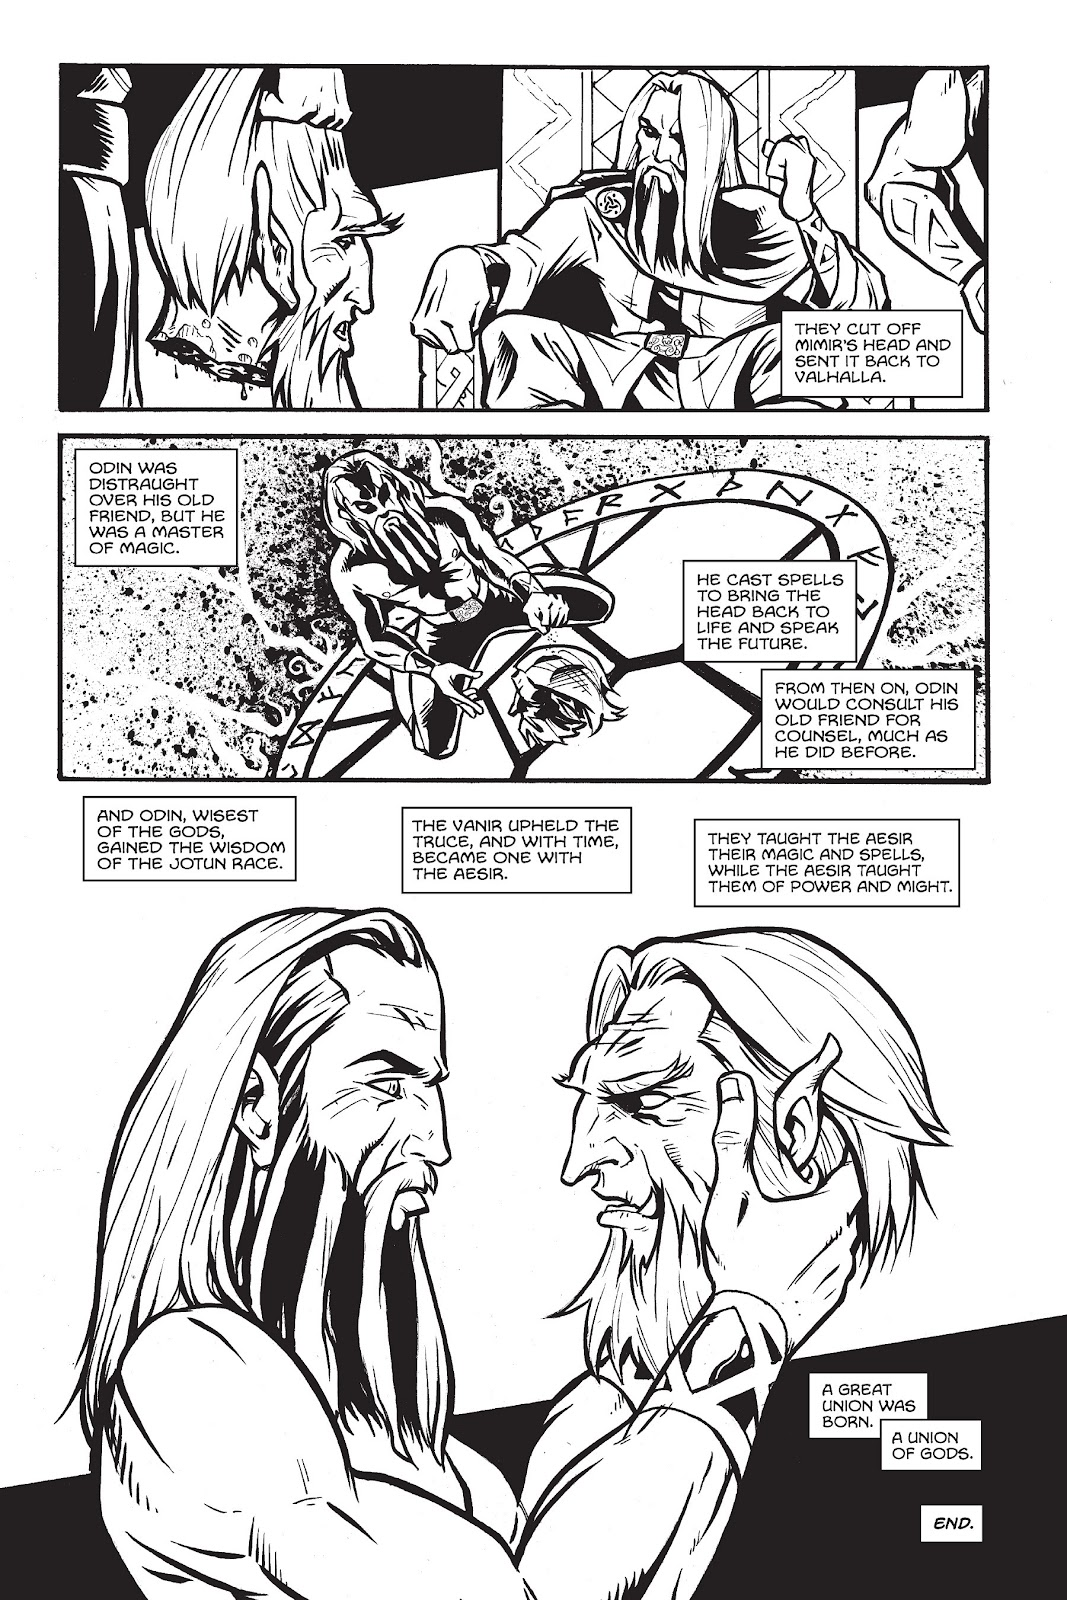 Read online Gods of Asgard comic -  Issue # TPB (Part 1) - 21